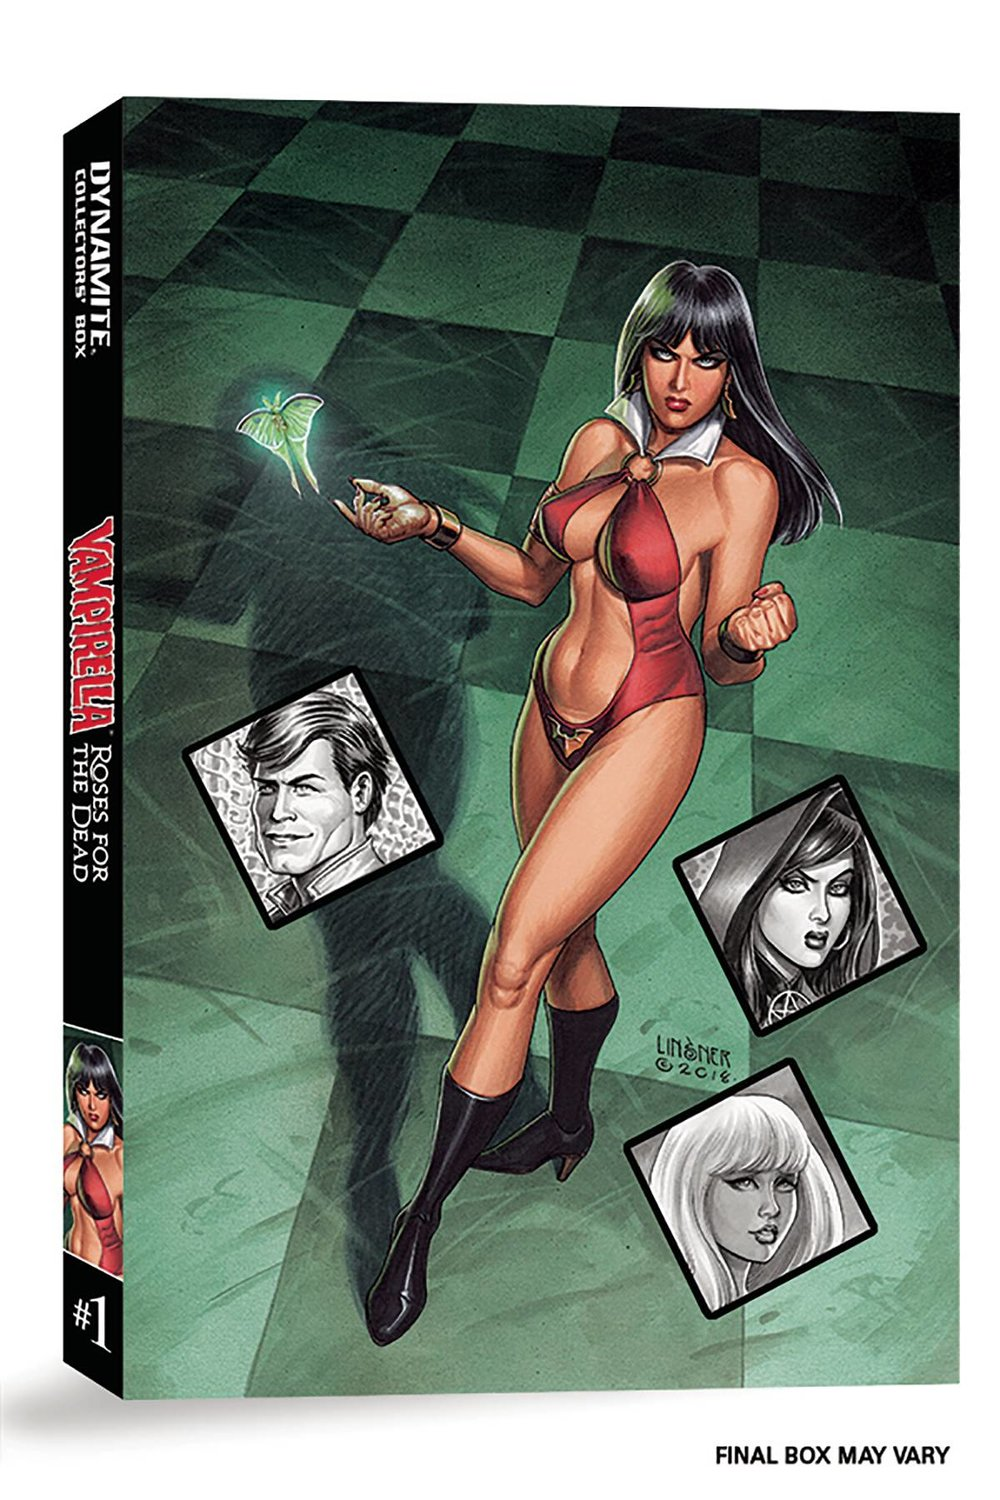 VAMPIRELLA ROSES FOR DEAD 1 of 5 DELUXE COLLECTORS BOX.jpg